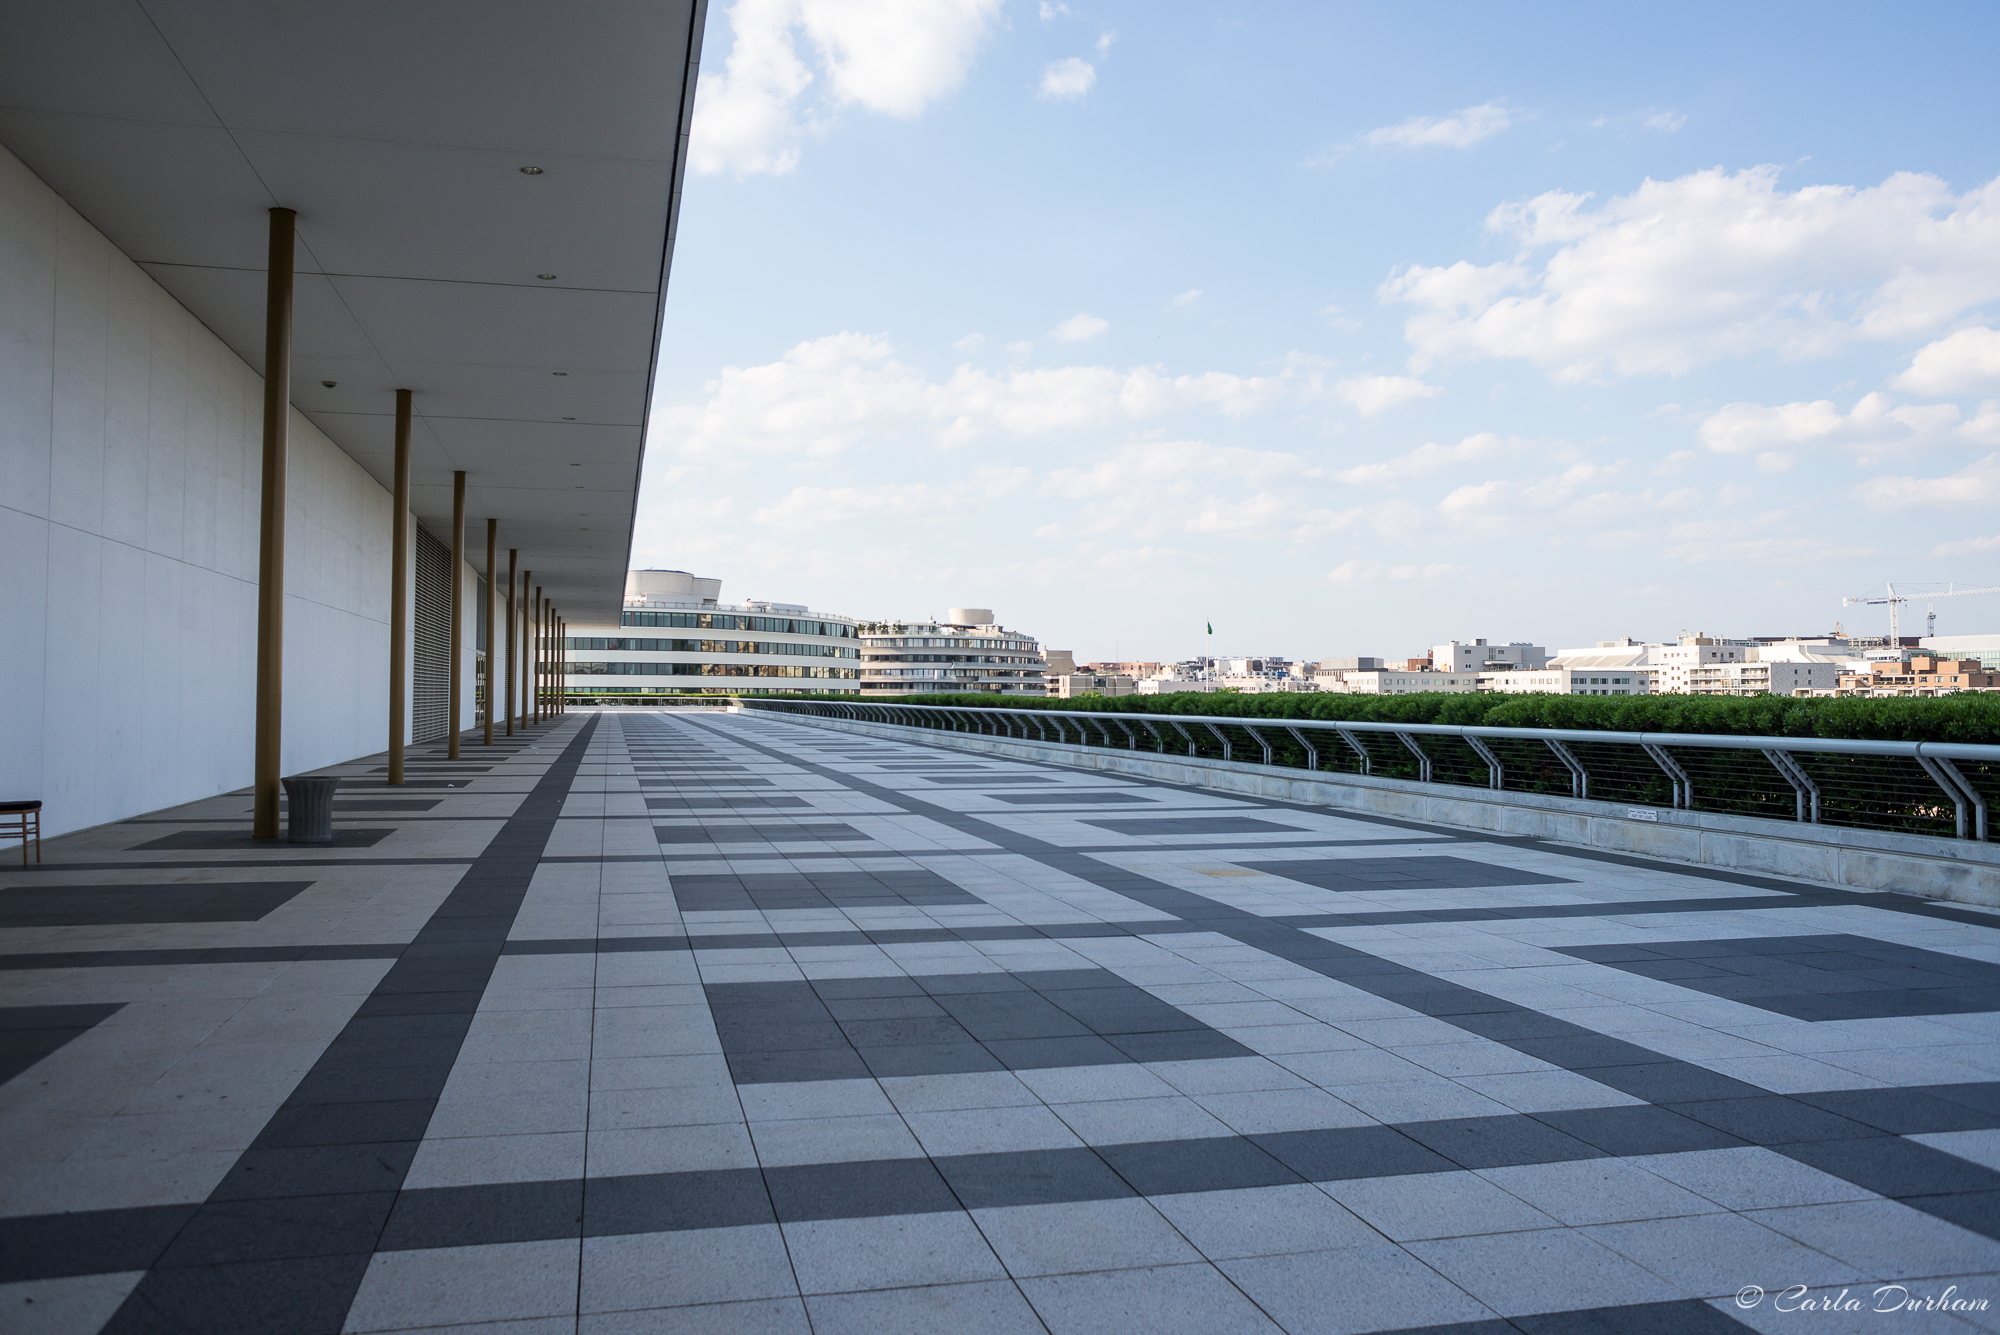 Views from the Kennedy Center roof top terrace - Photographer Carla Durham - 50 Cities and counting